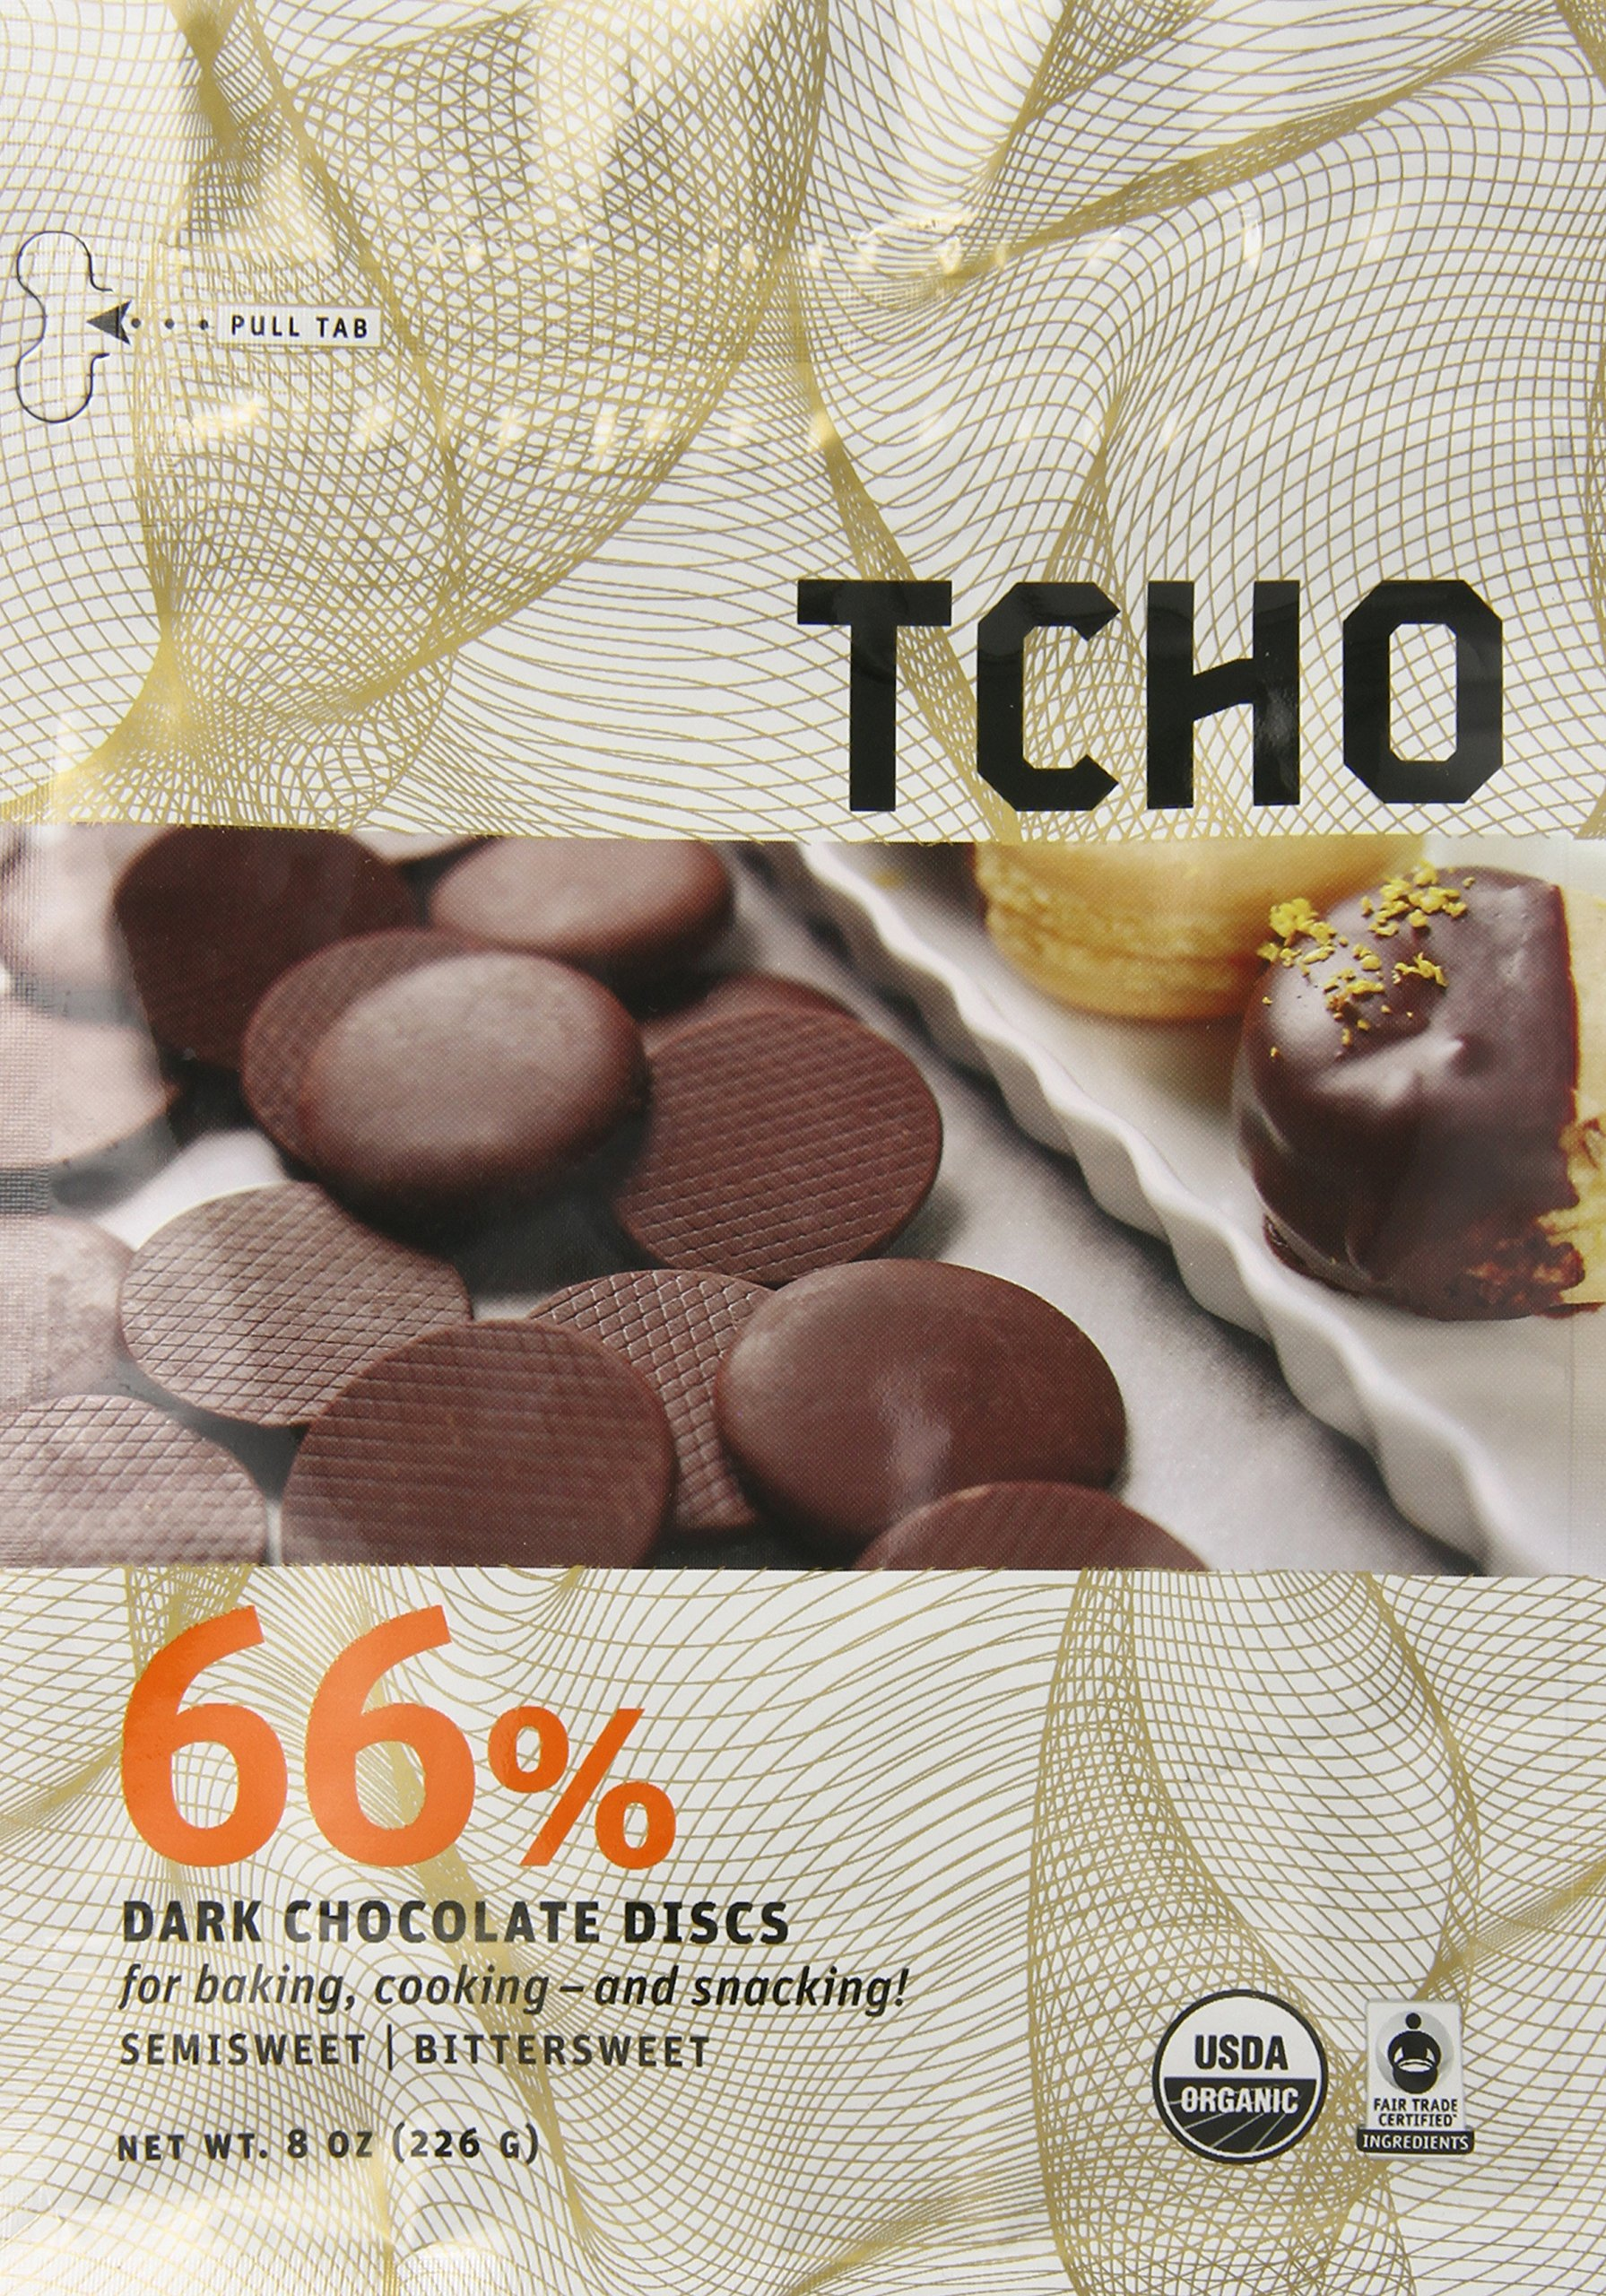 TCHO Chocolate 66% Dark Chocolate Discs, 8 Ounce